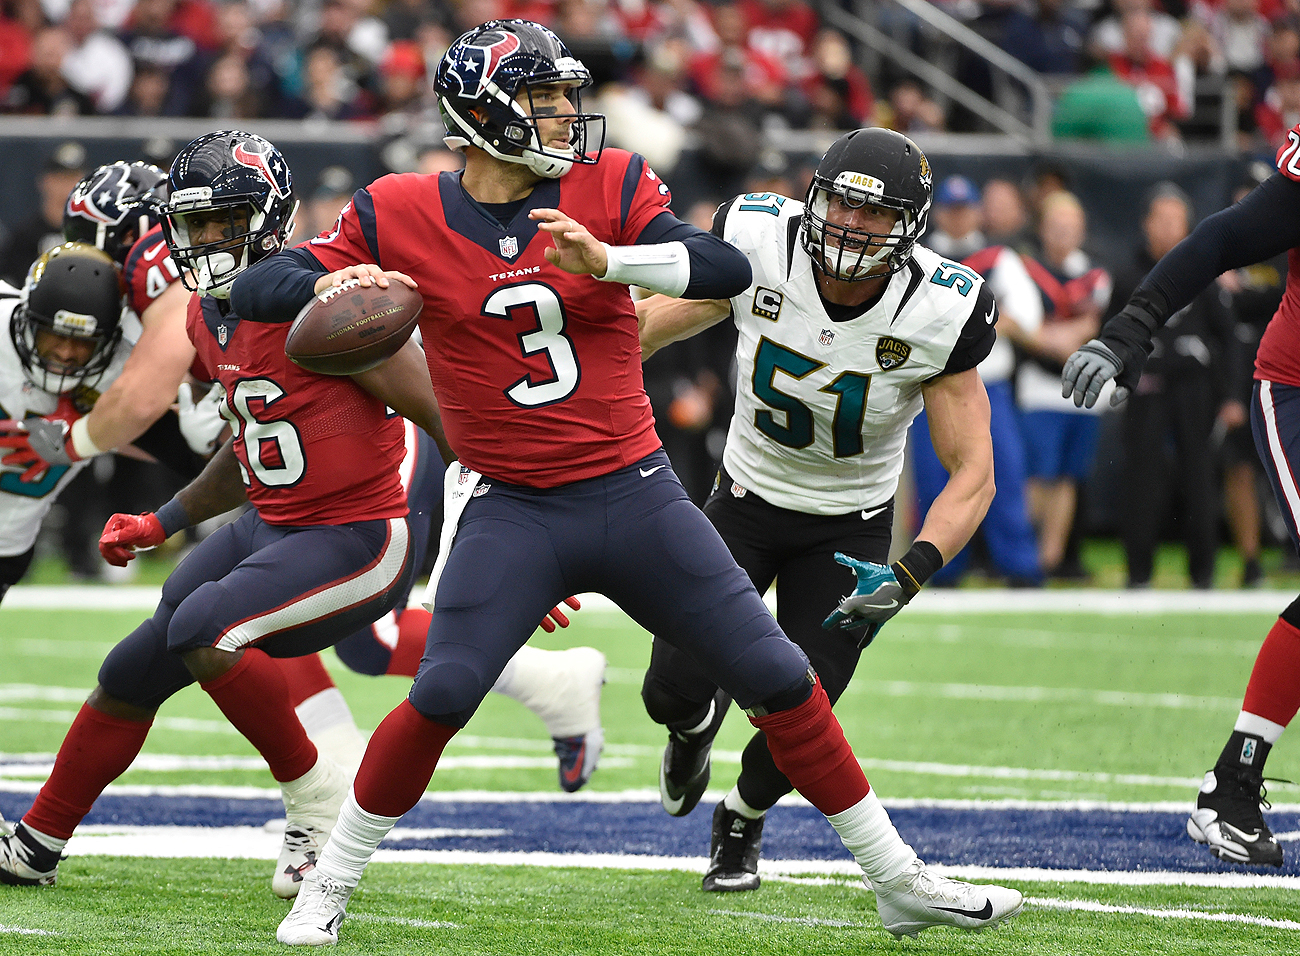 Tom Savage came off the bench to help lead the Texans to a comeback win over the Jags.